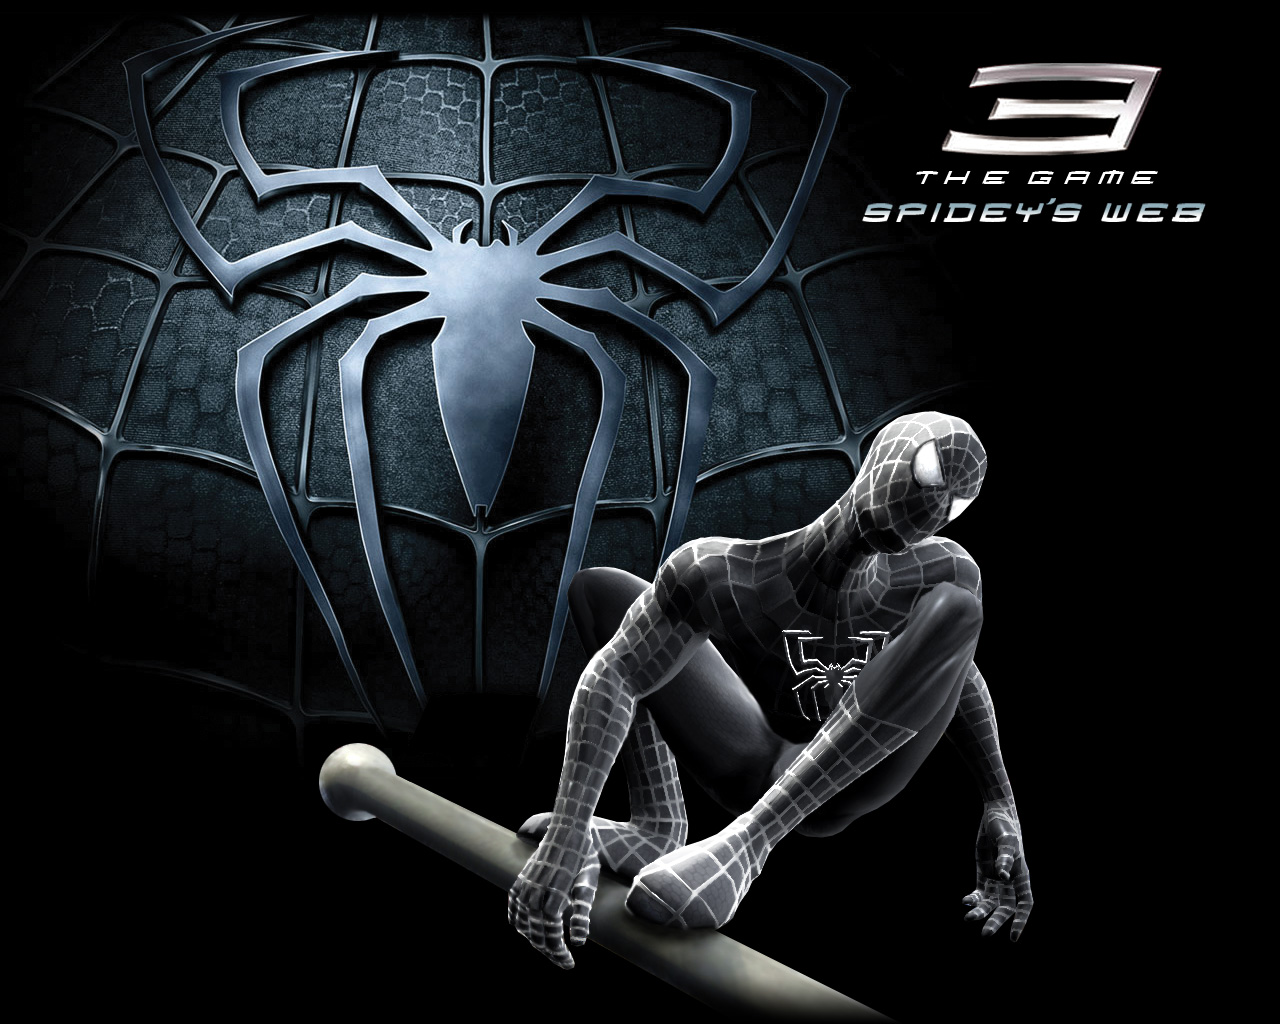 http://2.bp.blogspot.com/-f3NYscMGSUQ/T9cmGKzBkyI/AAAAAAAAAhc/-NnvU7ObPy8/s1600/Spiderman-Movie-Wallpaper.jpg